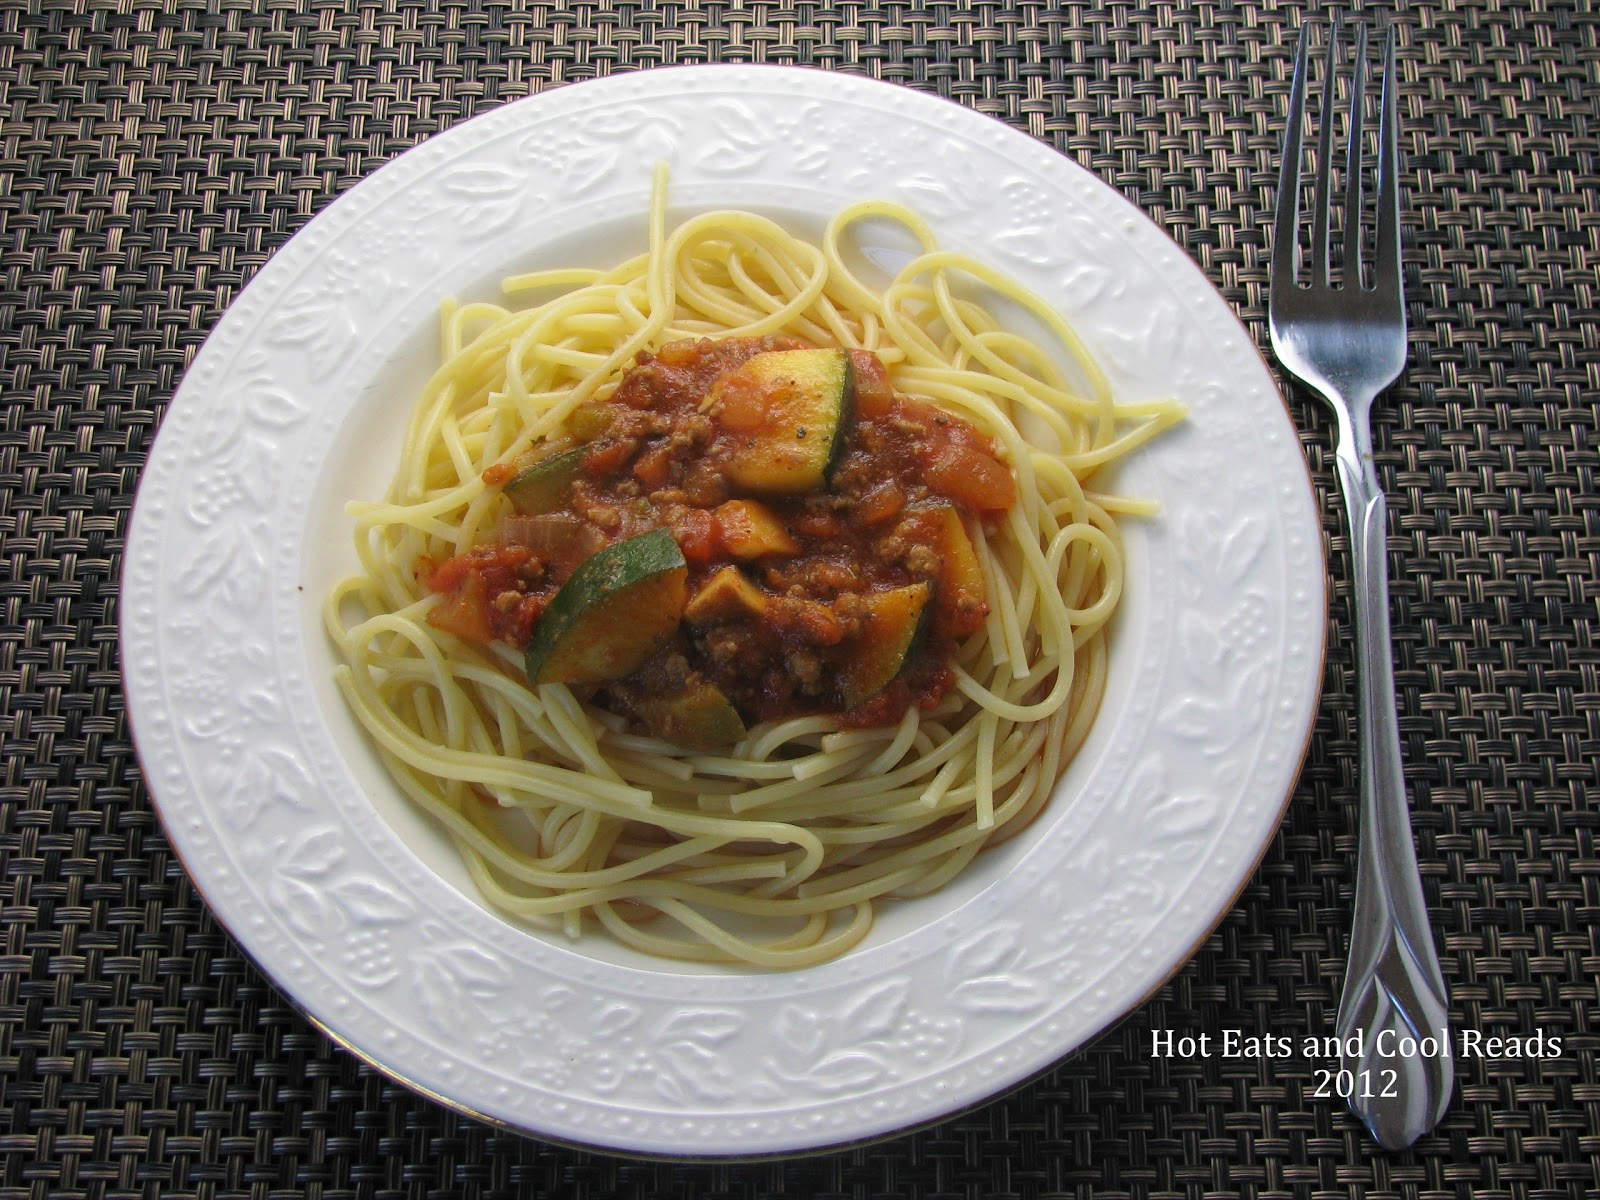 Hot Eats and Cool Reads: Zucchini & Ground Beef Spaghetti Sauce Recipe